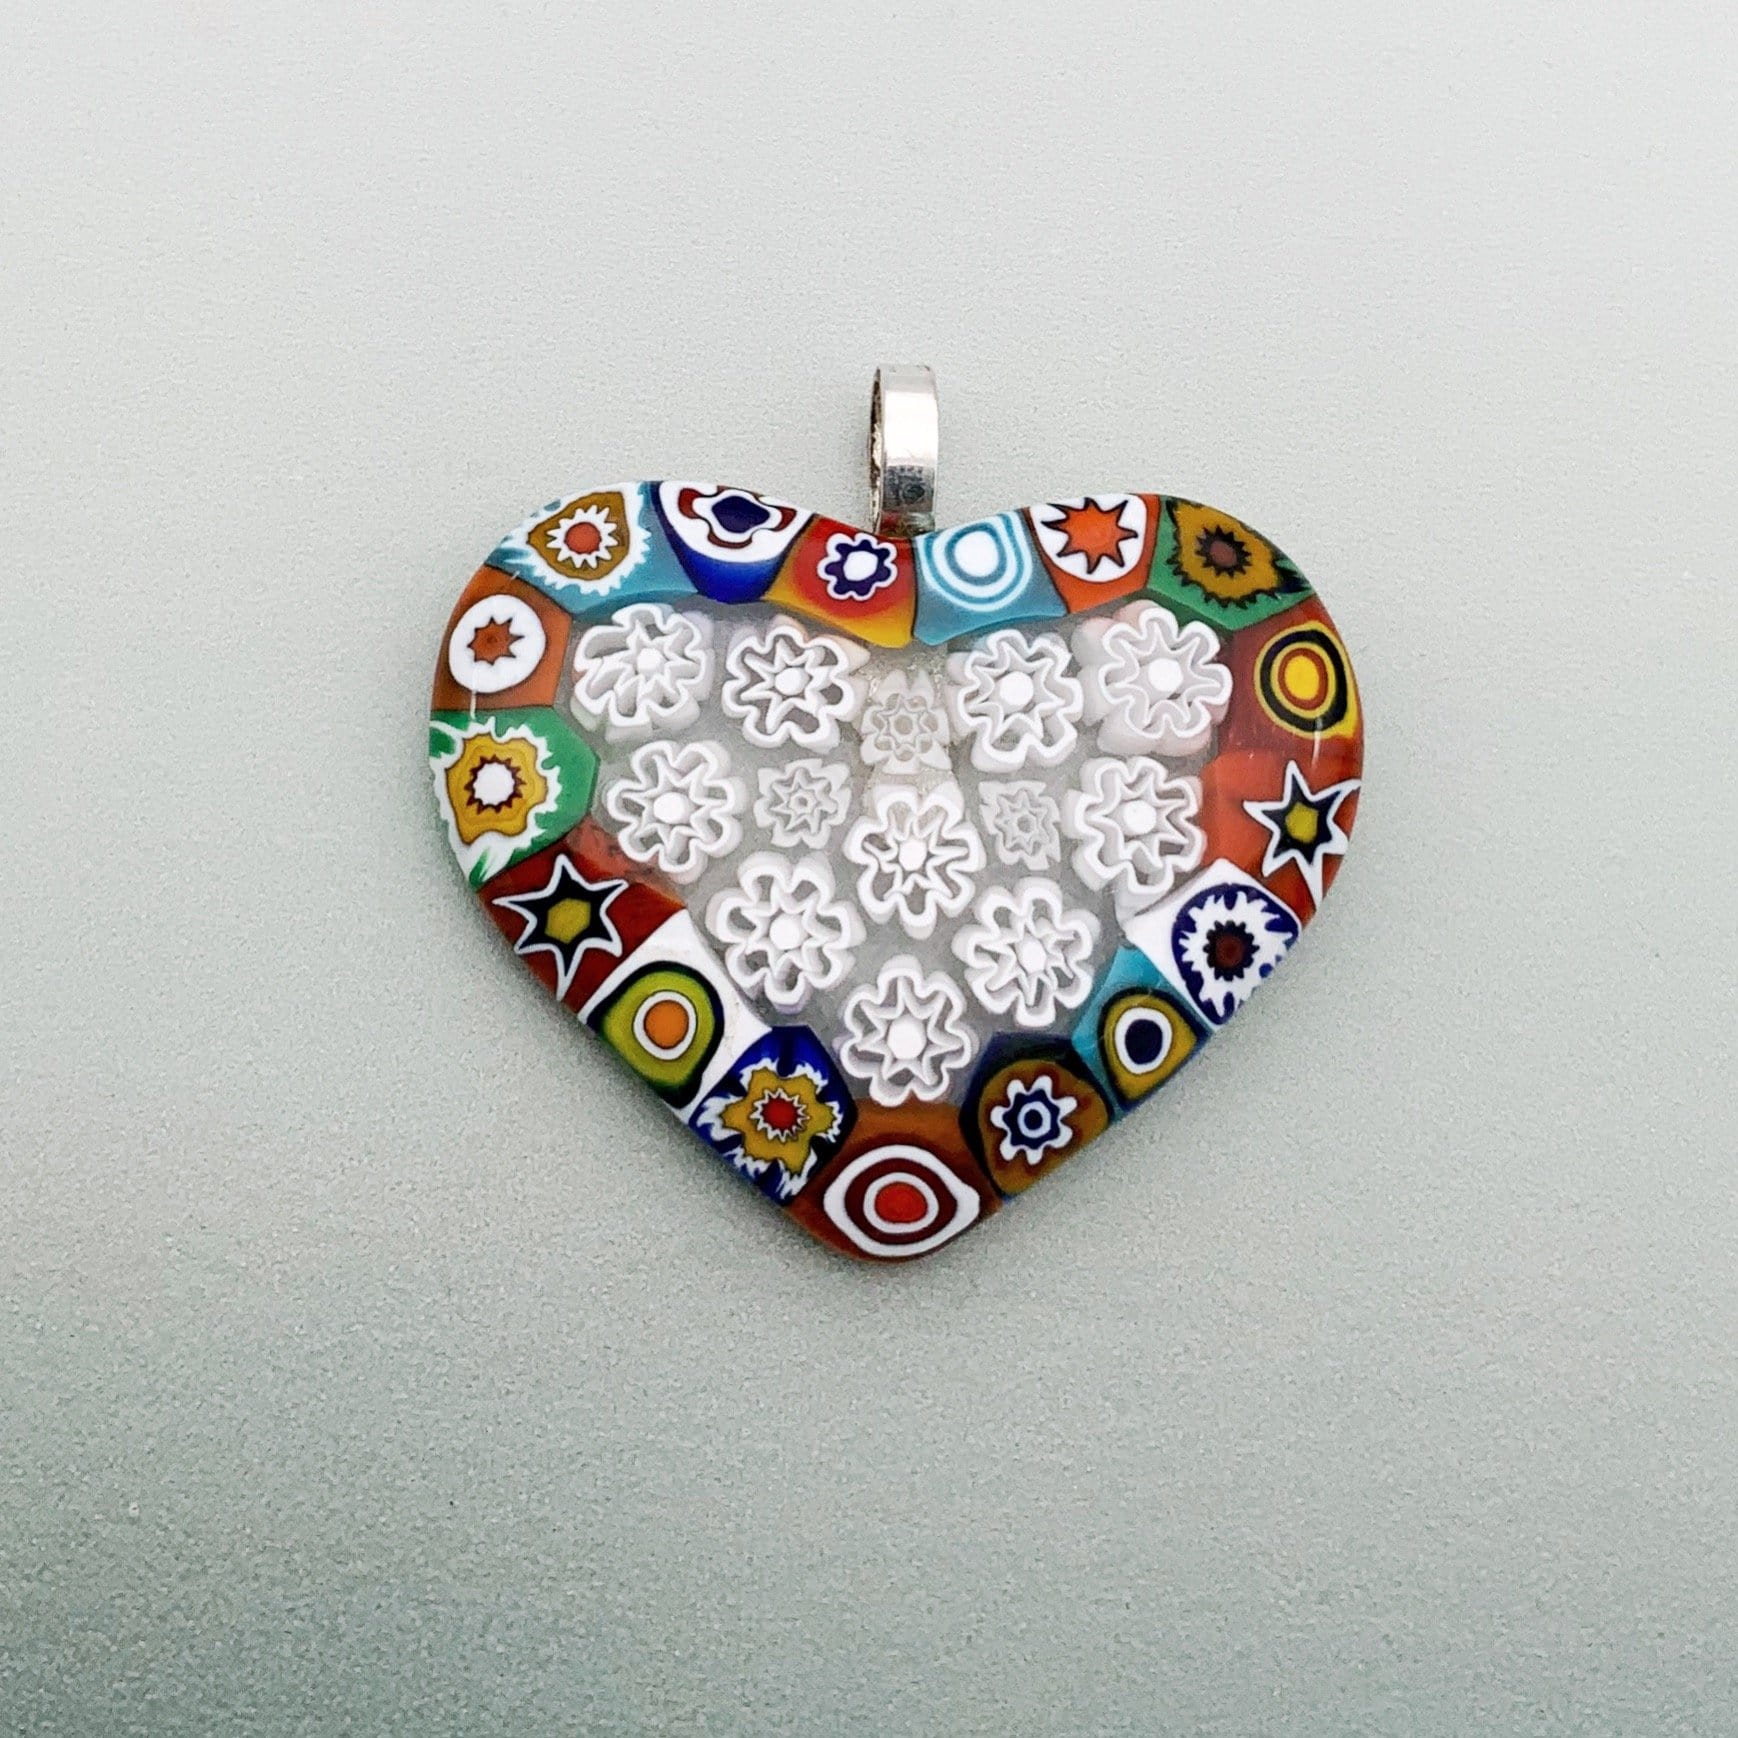 Fused millefiori large glass pendant with opaque patterns and white fleurette